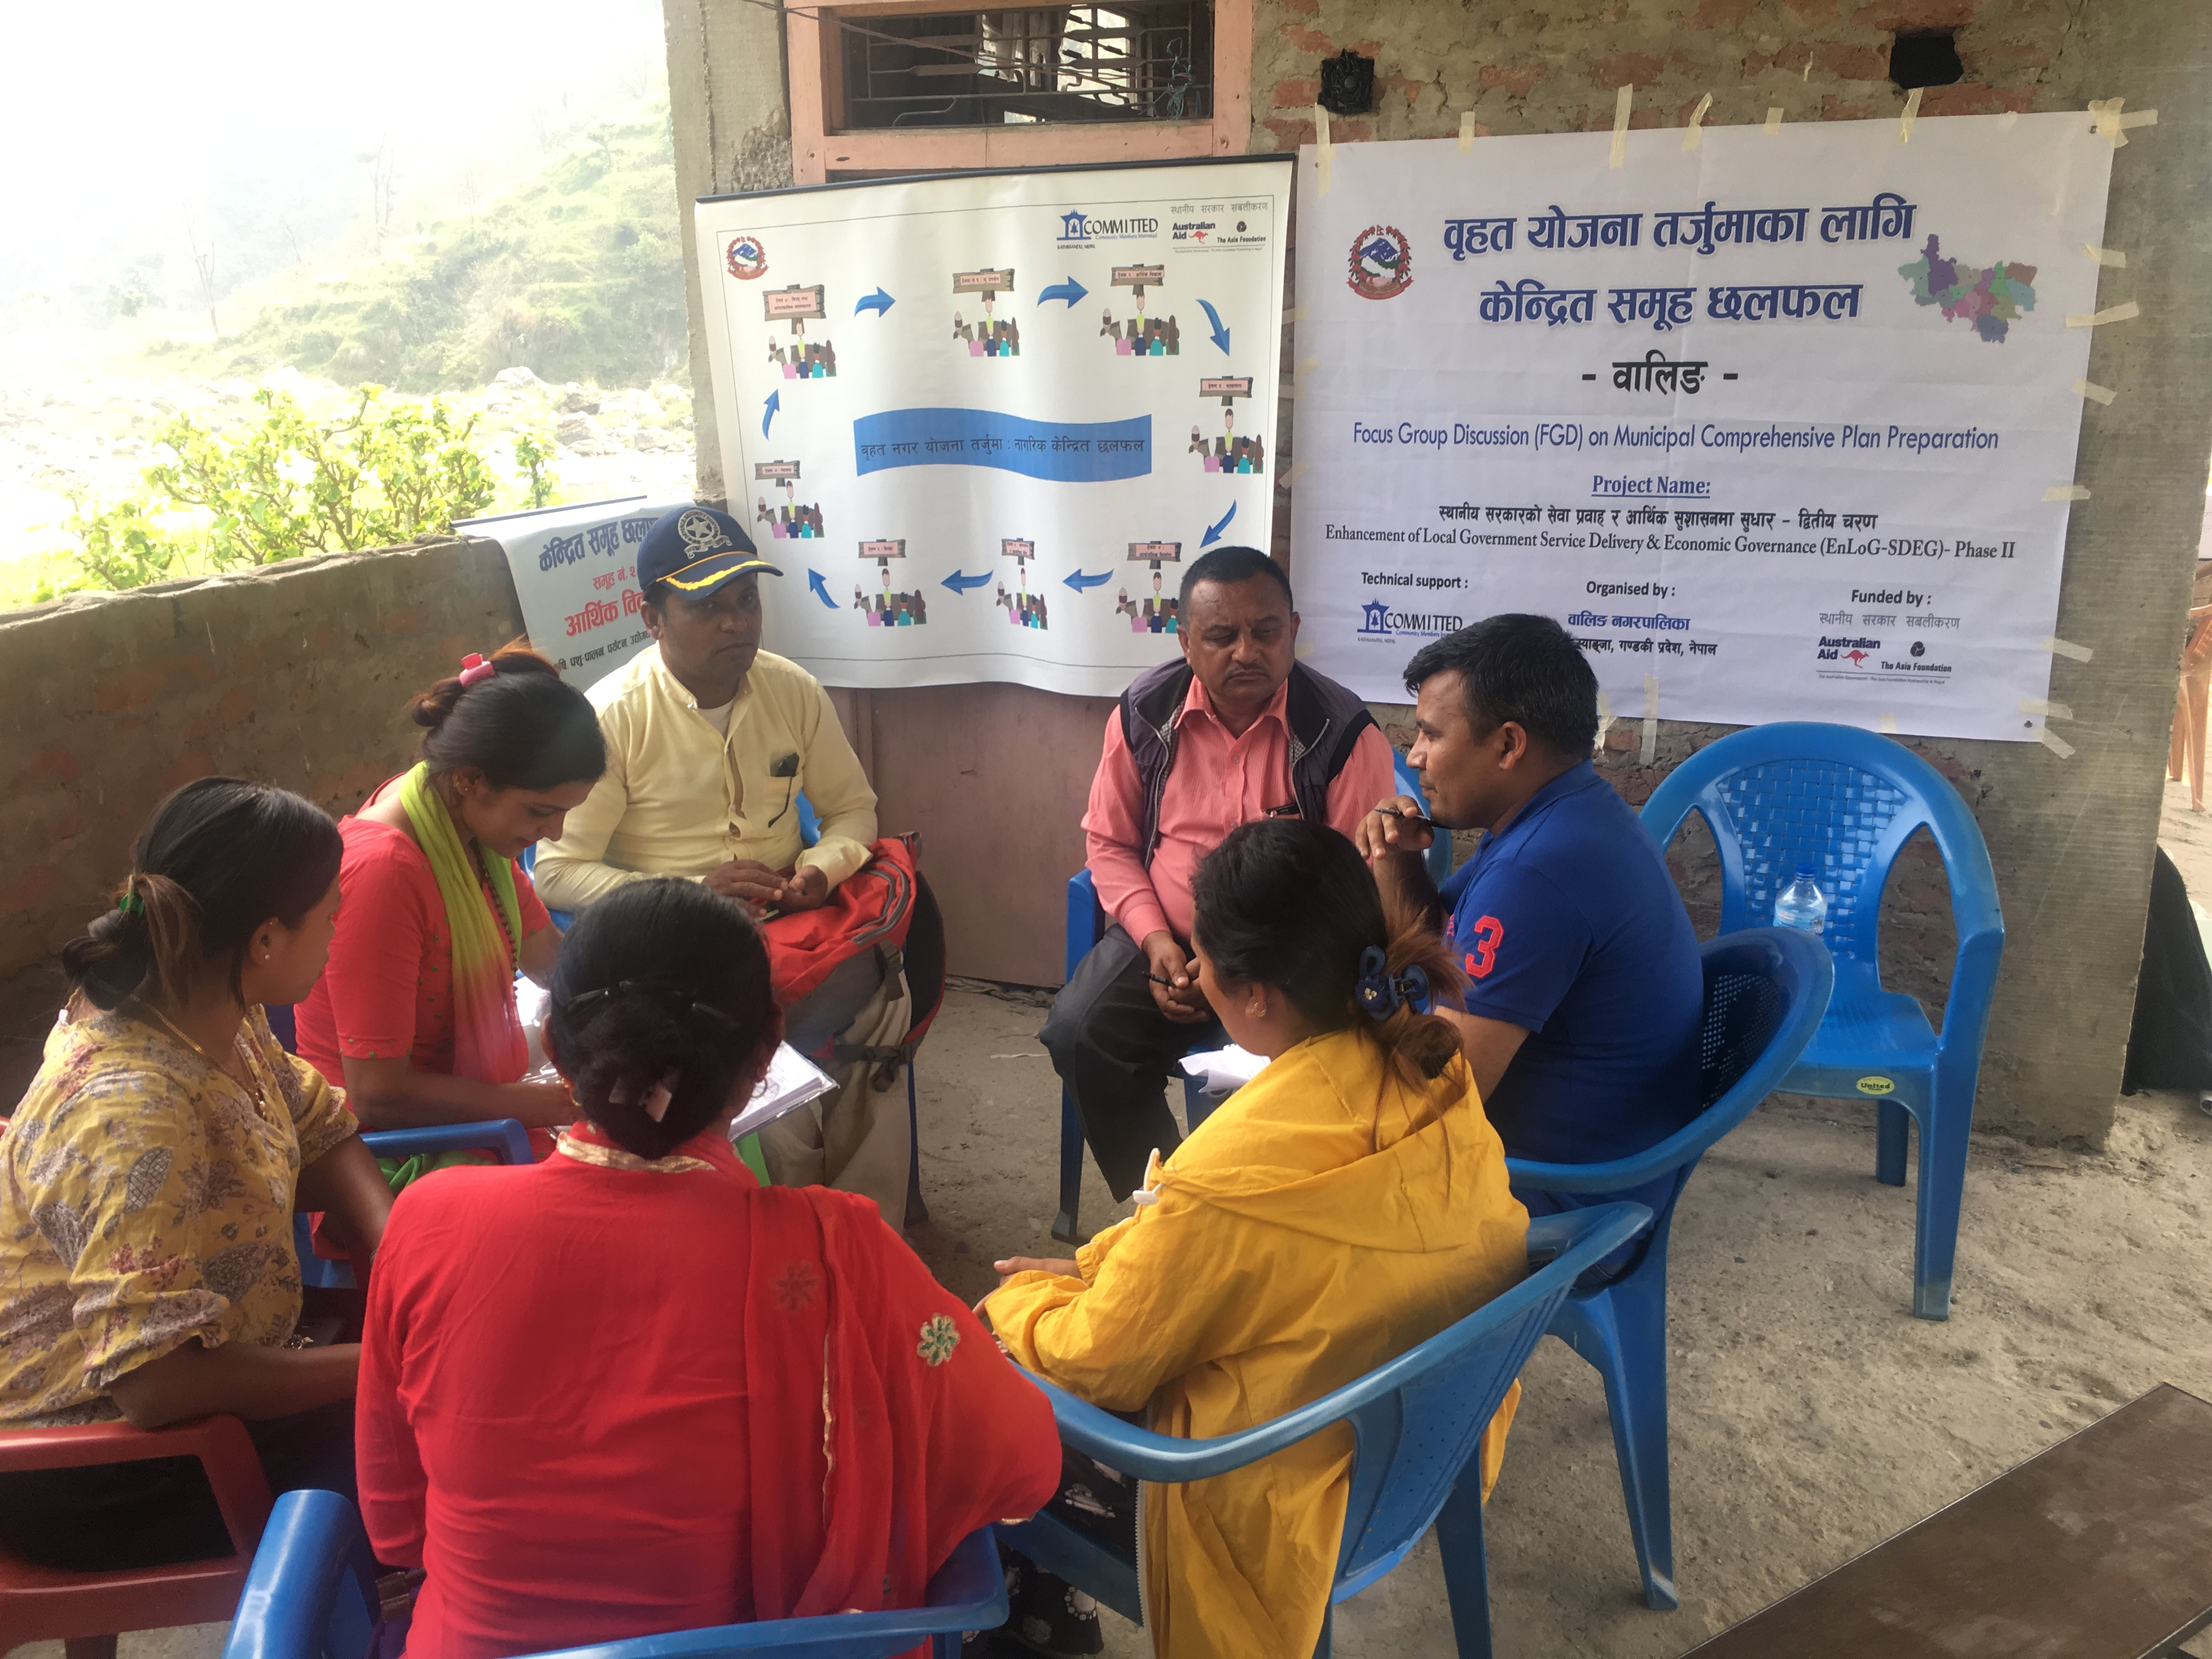 Focus Group Discussion in Tikapur Municipality for the development of Municipal Comprehensive Plan.